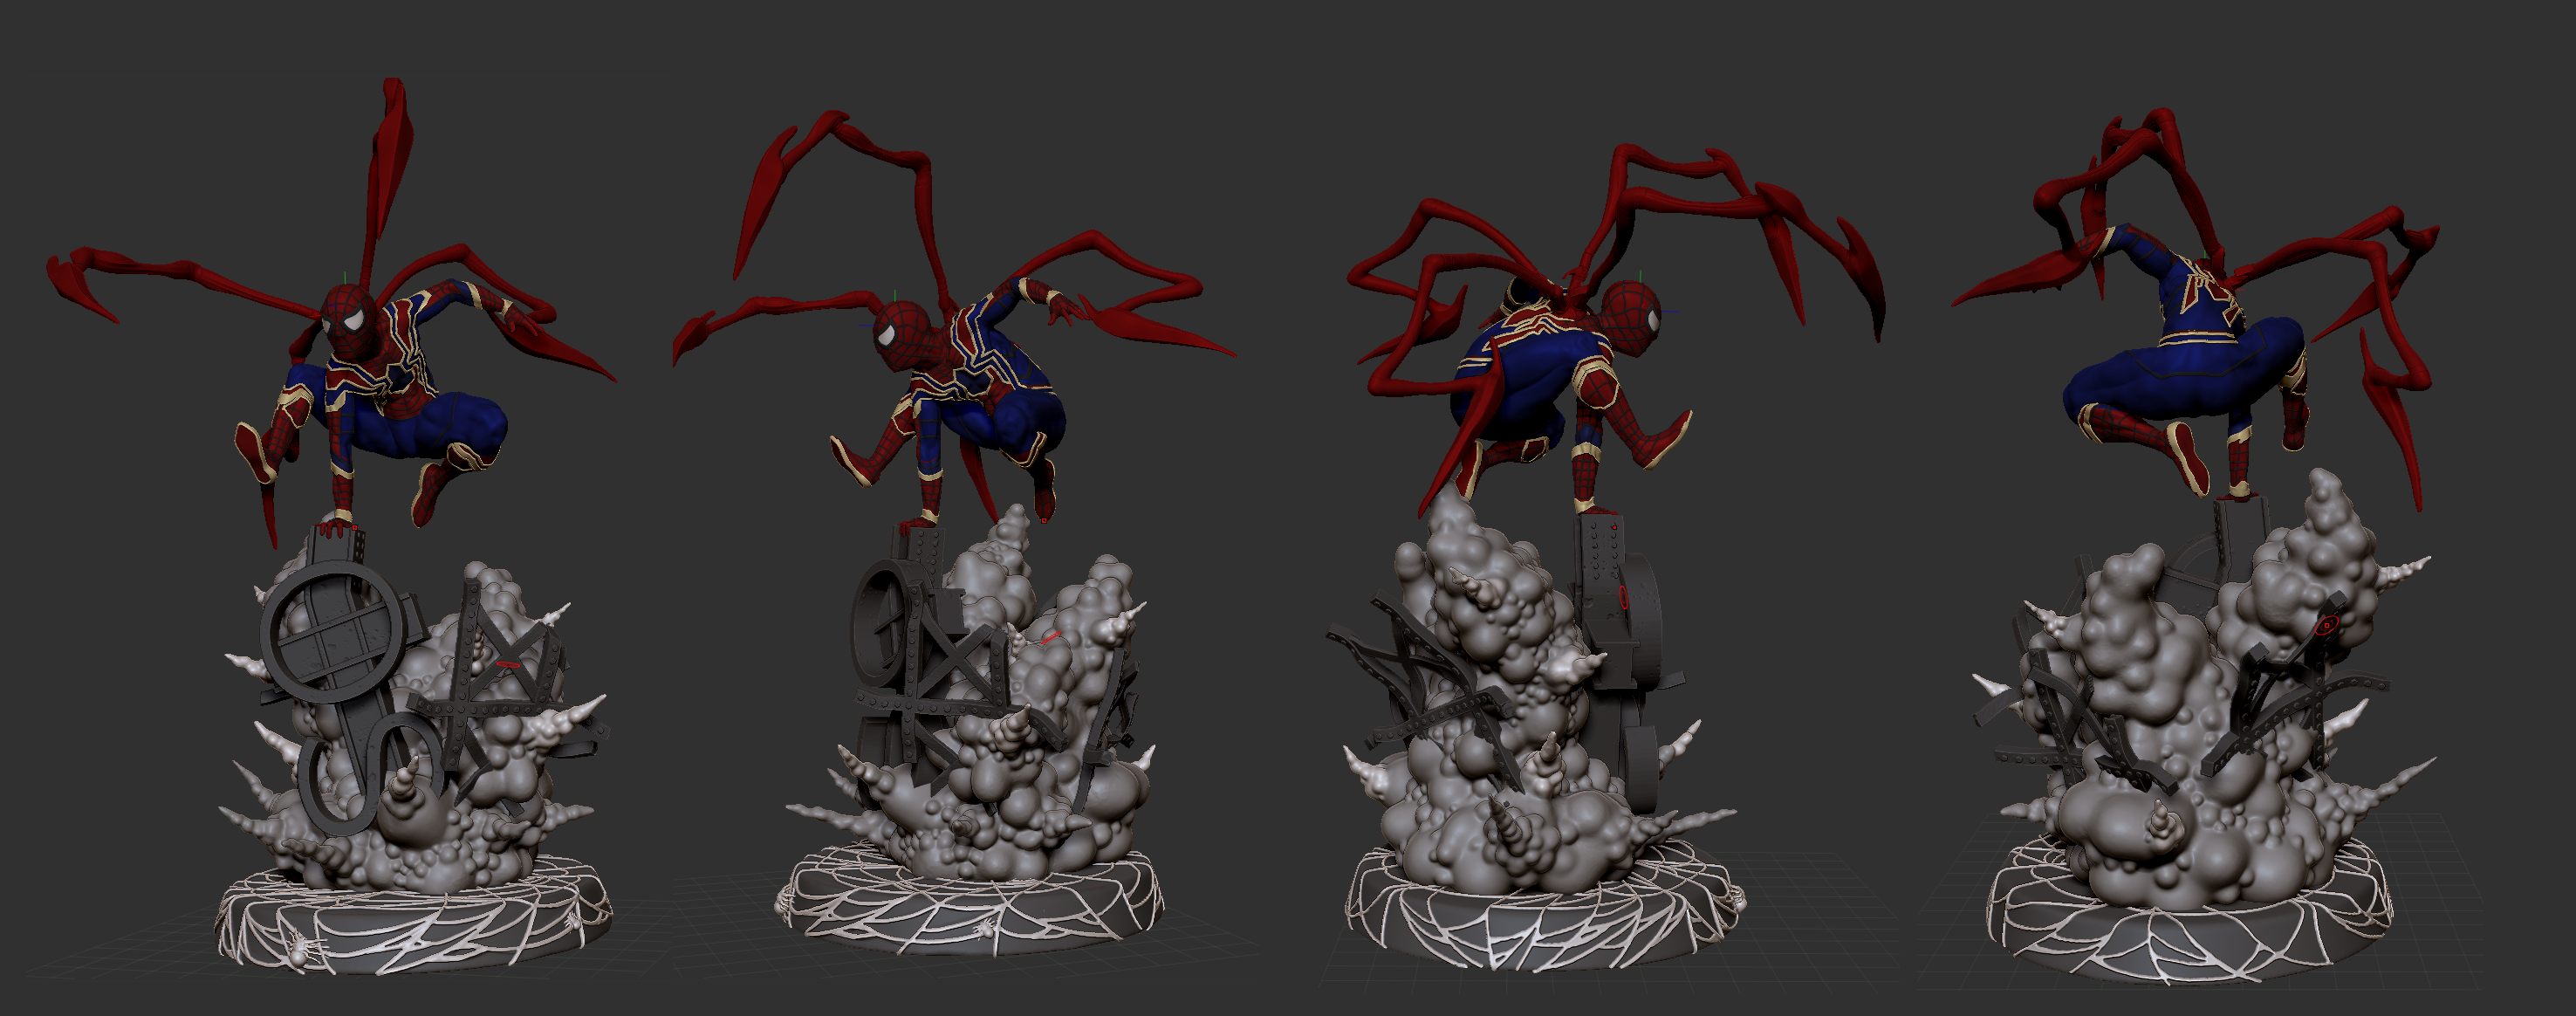 Spiderman Infinity War STL for 3D print